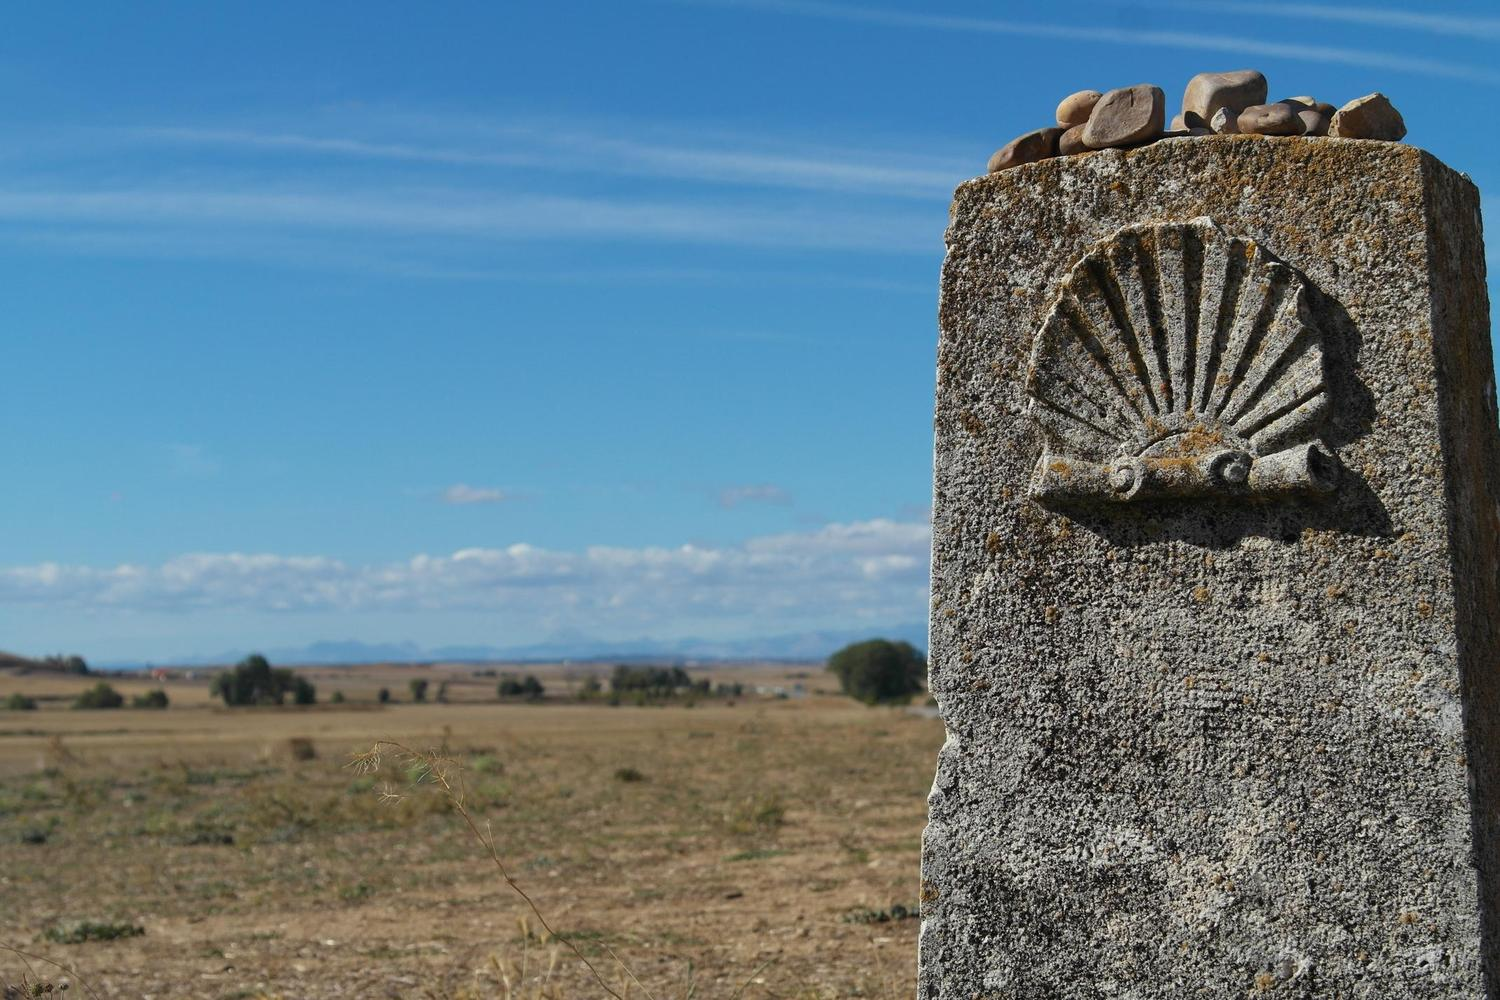 Signs along the Camino de Santiago